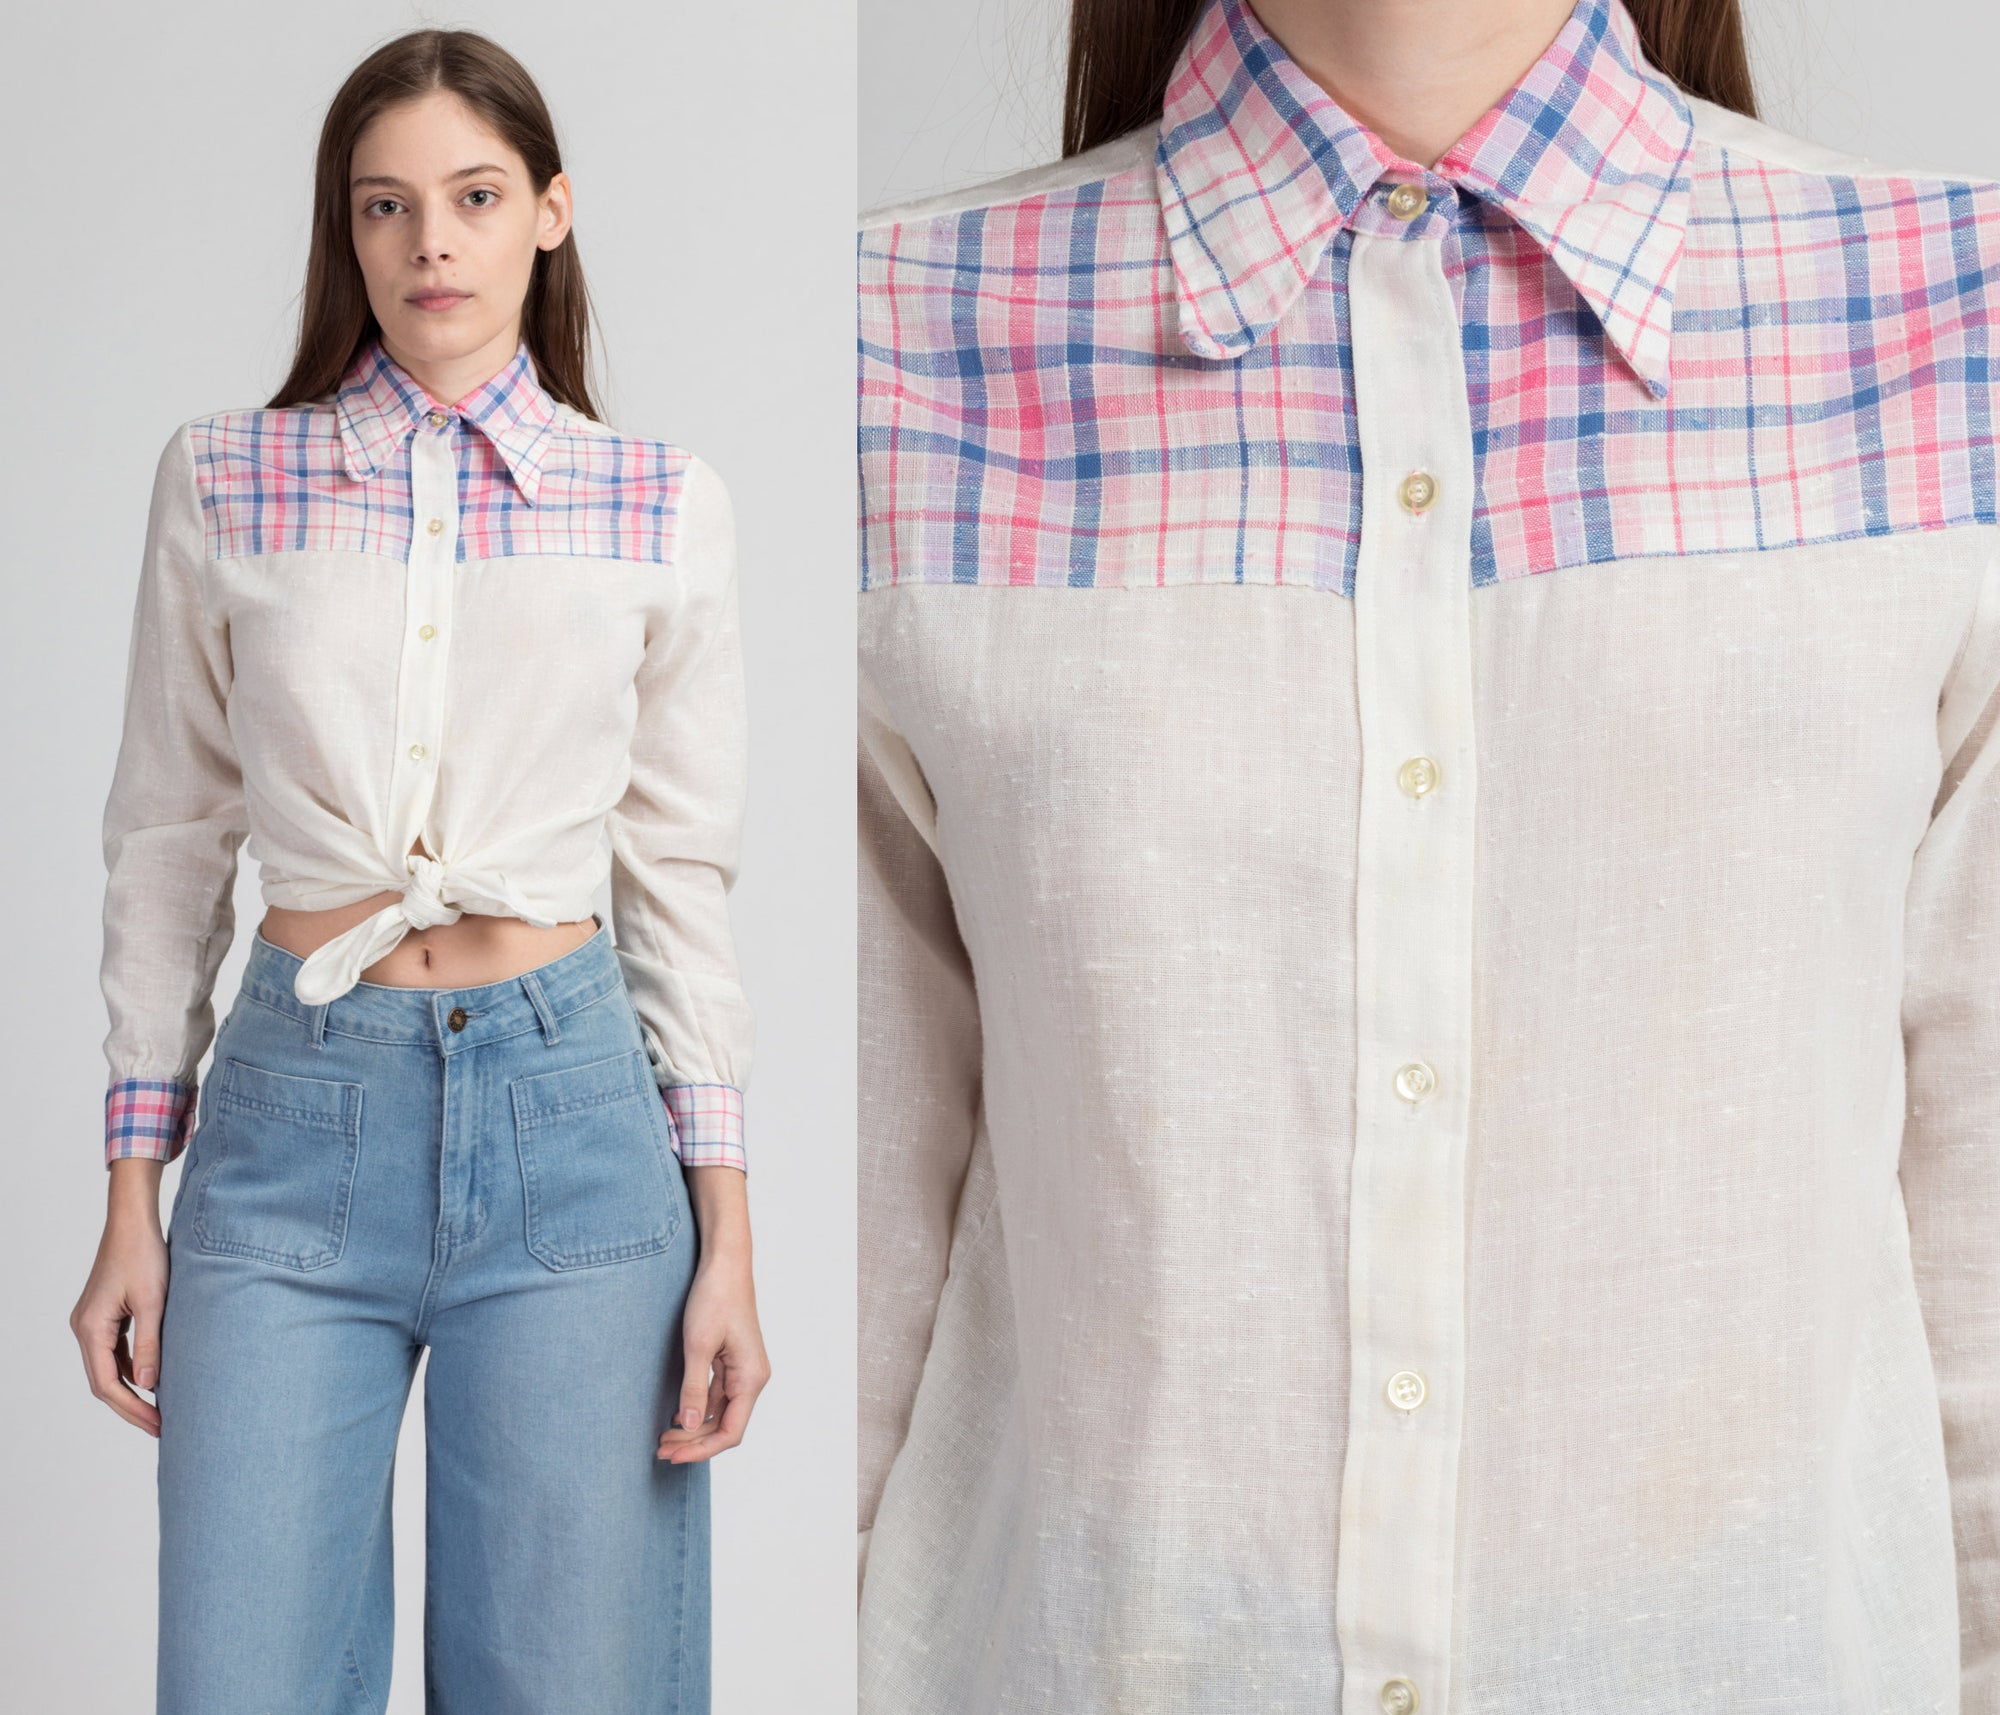 70s Plaid Yoke Western Blouse, As Is - Petite Small | Vintage White Pink Long Sleeved Collared Top